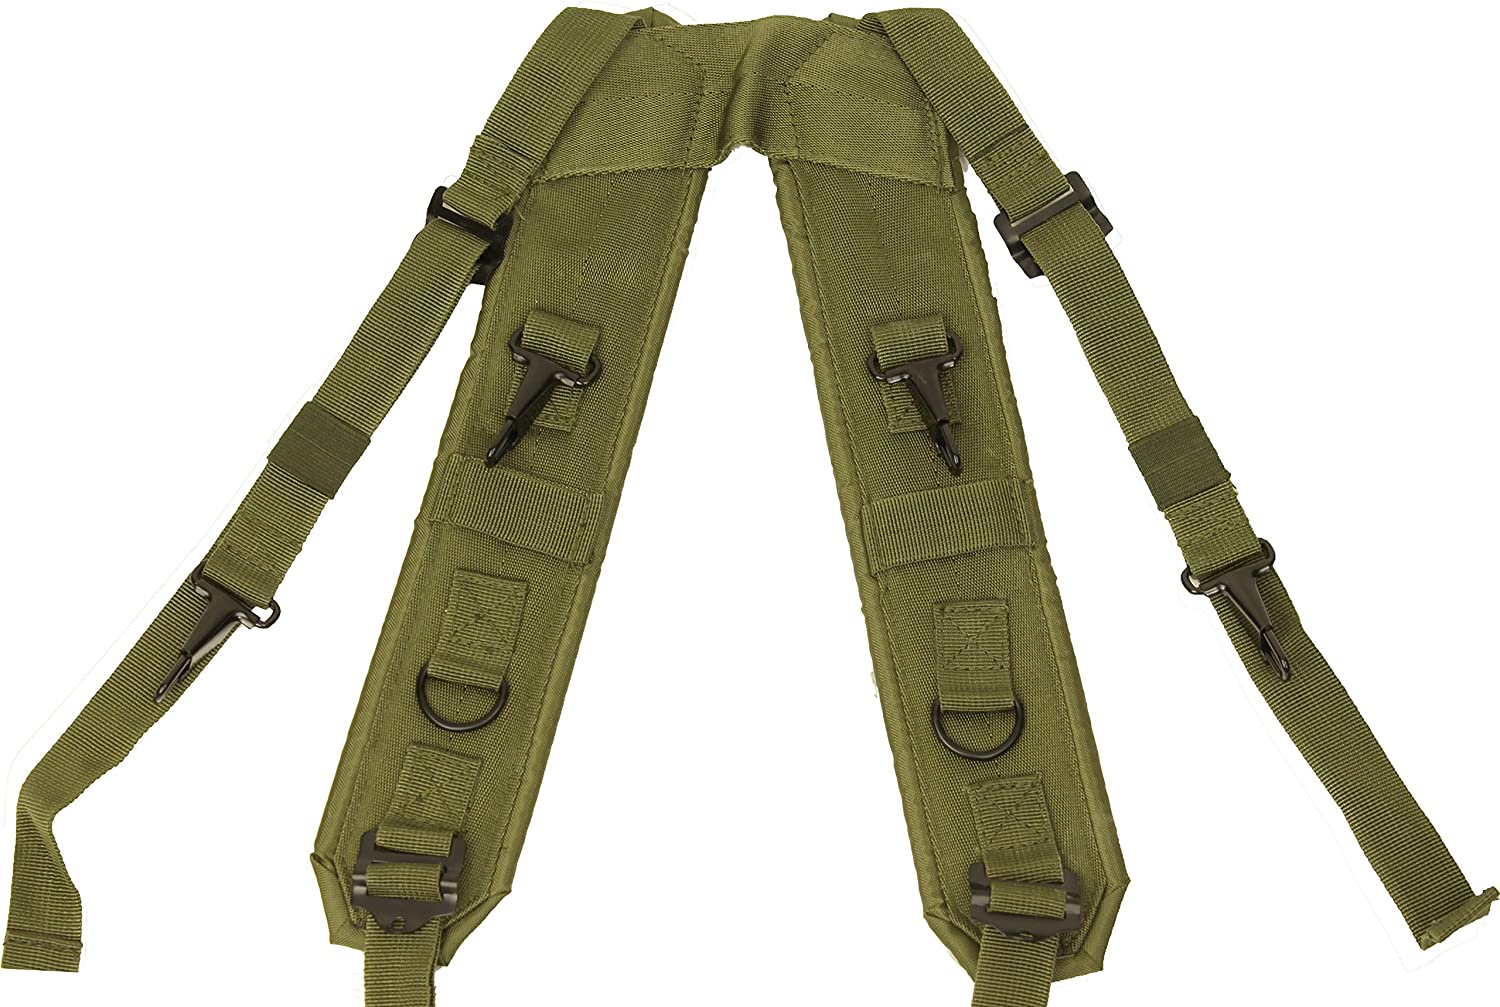 Olive Drab Combat H Style LC-1 Military Suspenders Load Bearing Harness Backpack Straps